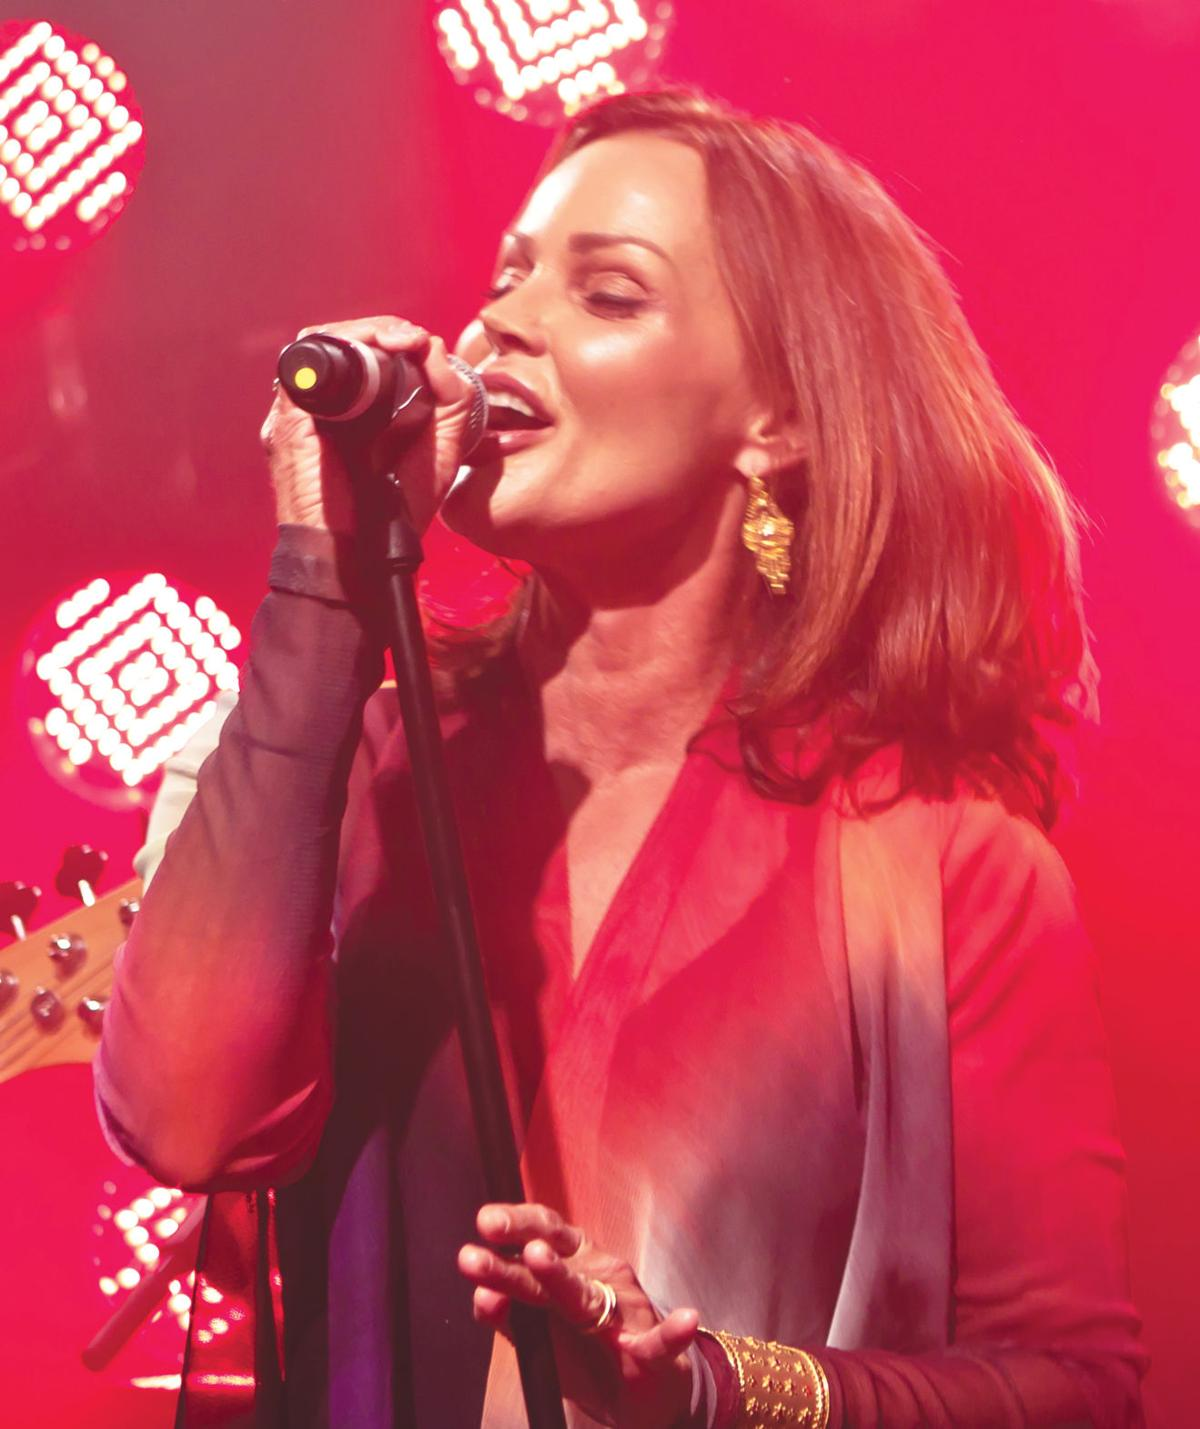 Retro futura booked at welk belinda carlisle abc modern english retro futura show at the welk resort theatre in july along with abc modern english the outfields tony lewis kajagoogoos limahl and bow wow wows nvjuhfo Image collections